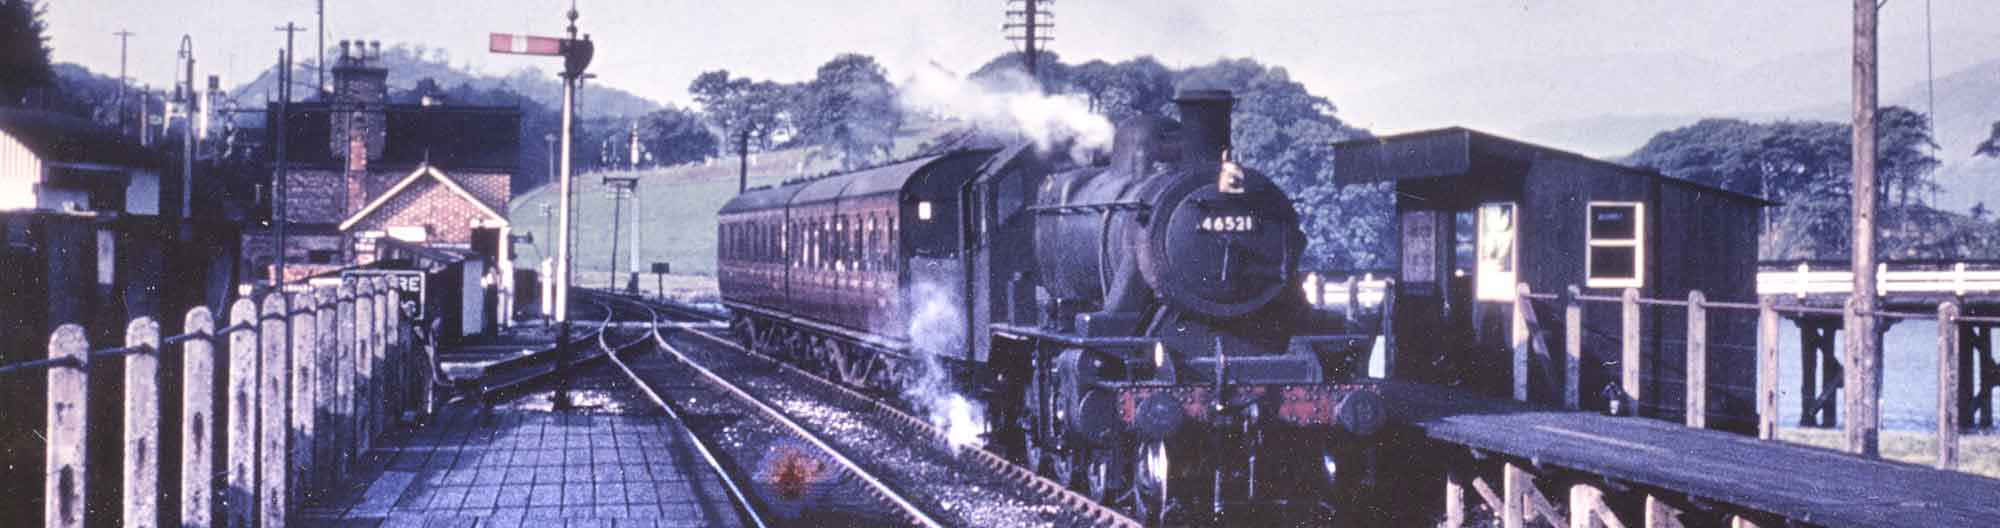 A Steam Train at Penmaenpool Station